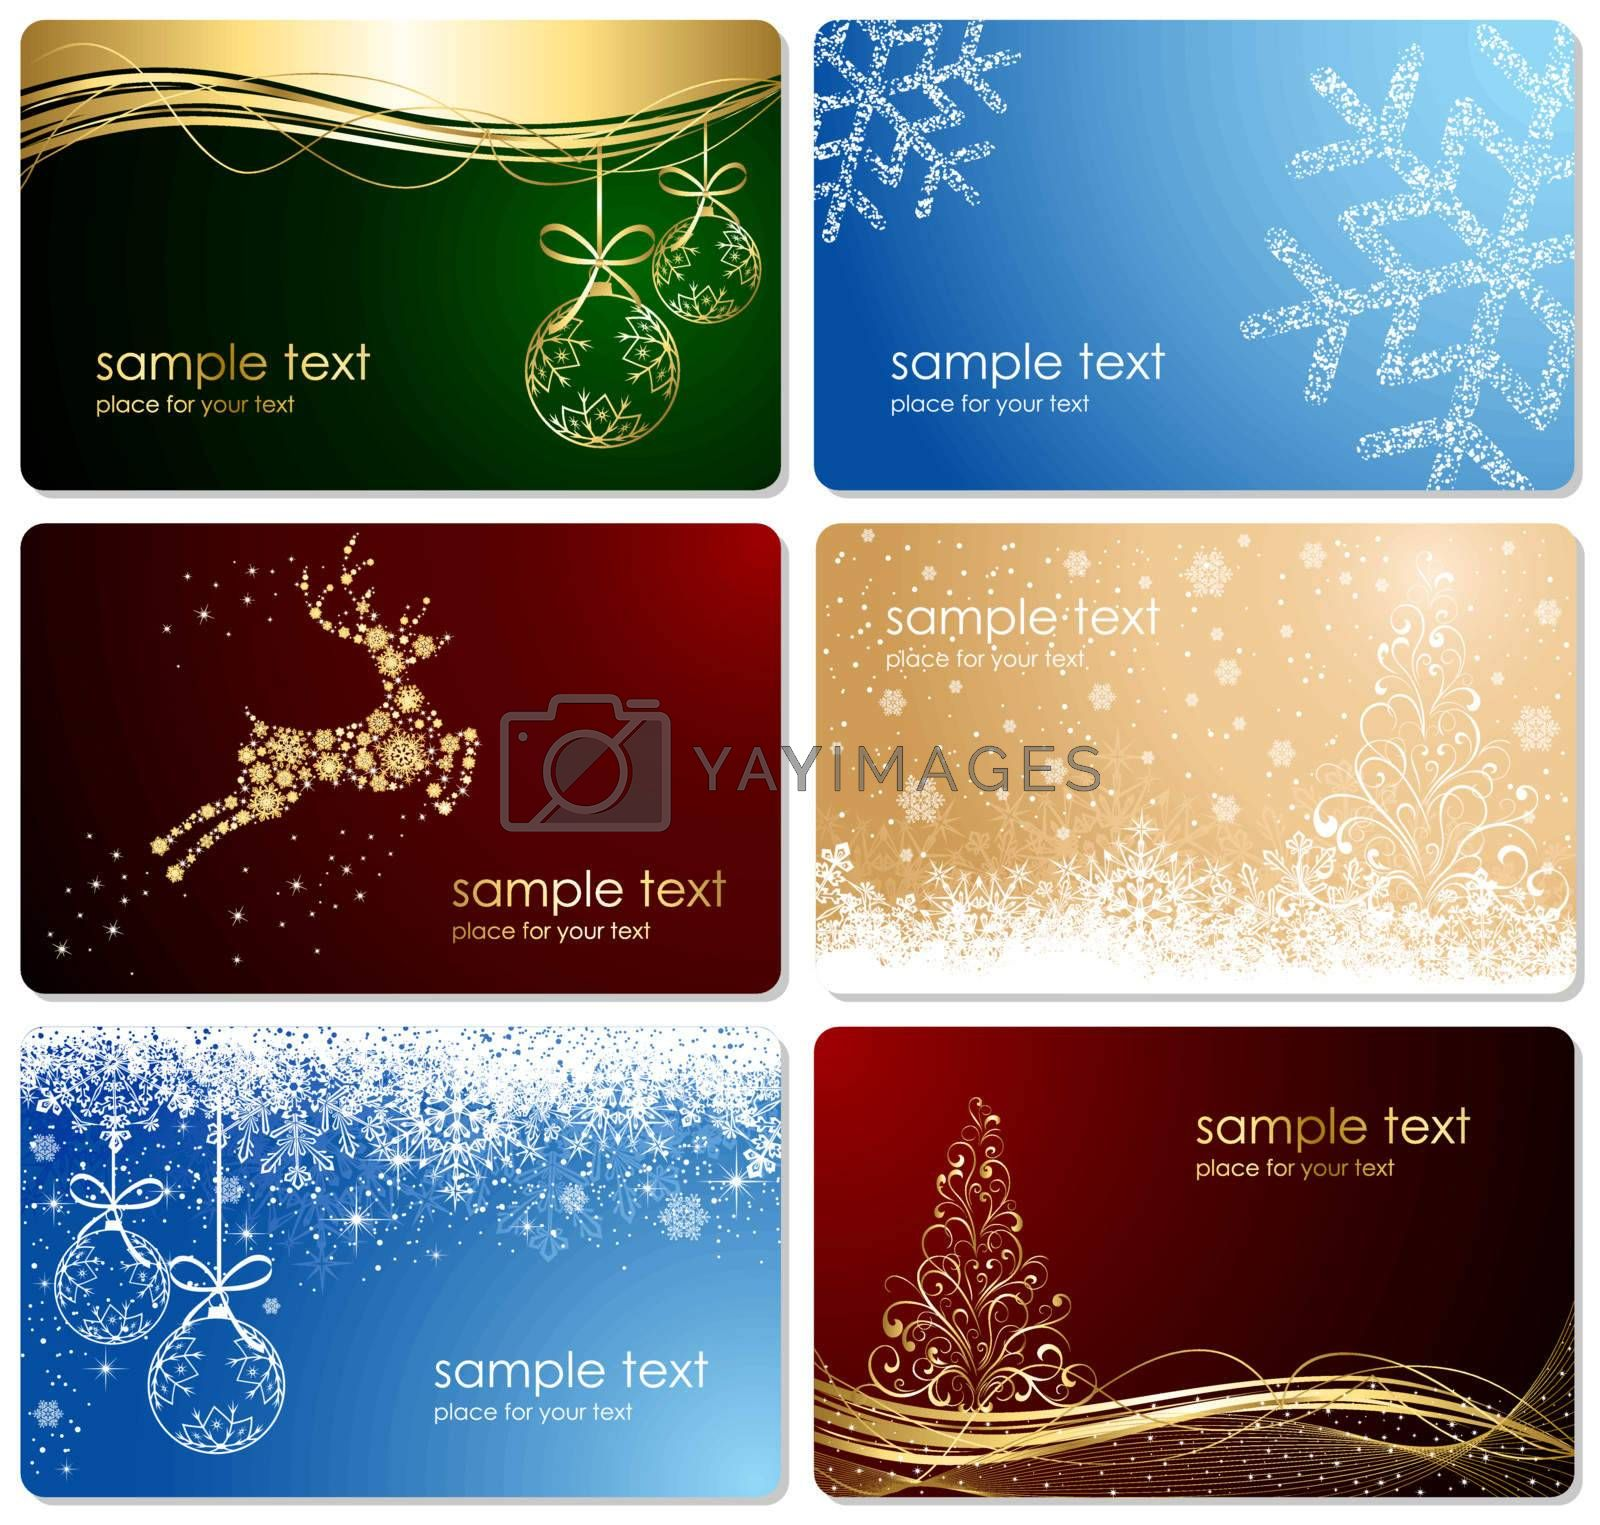 Vector with an abstract Christmas background